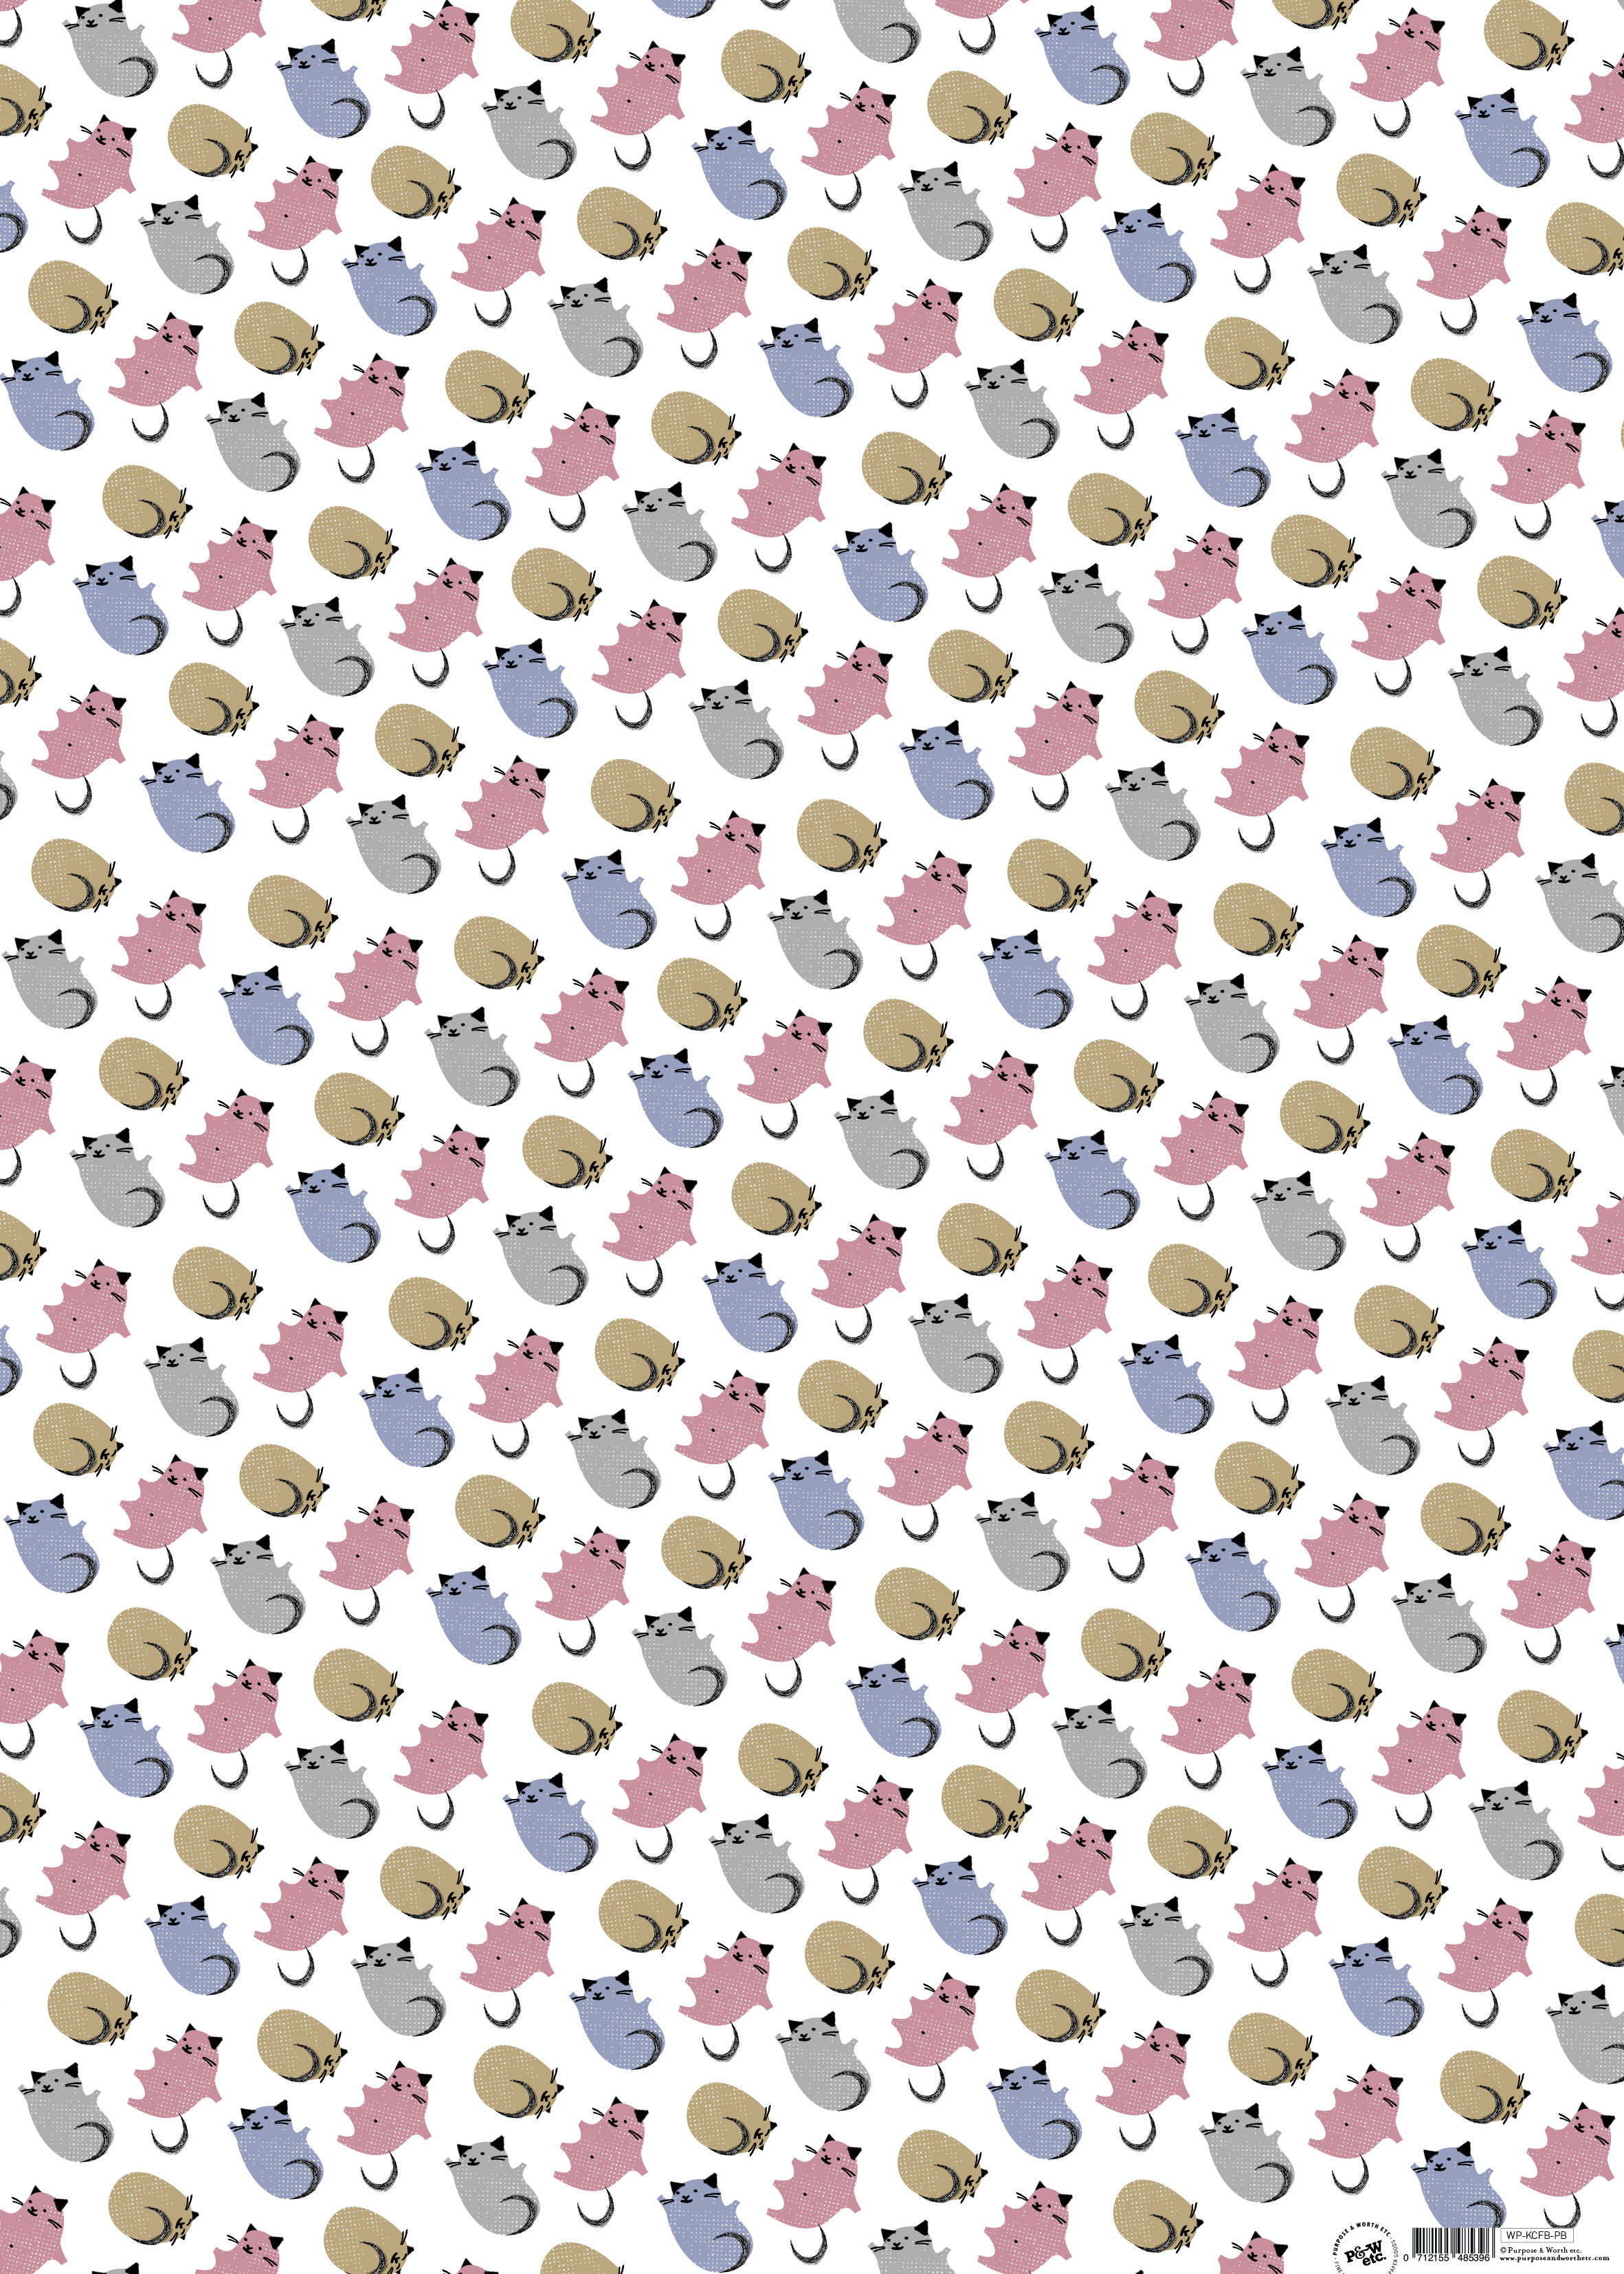 Kitty-corner new baby cat wrapping paper: WP_KCFB_PB, matching cards available